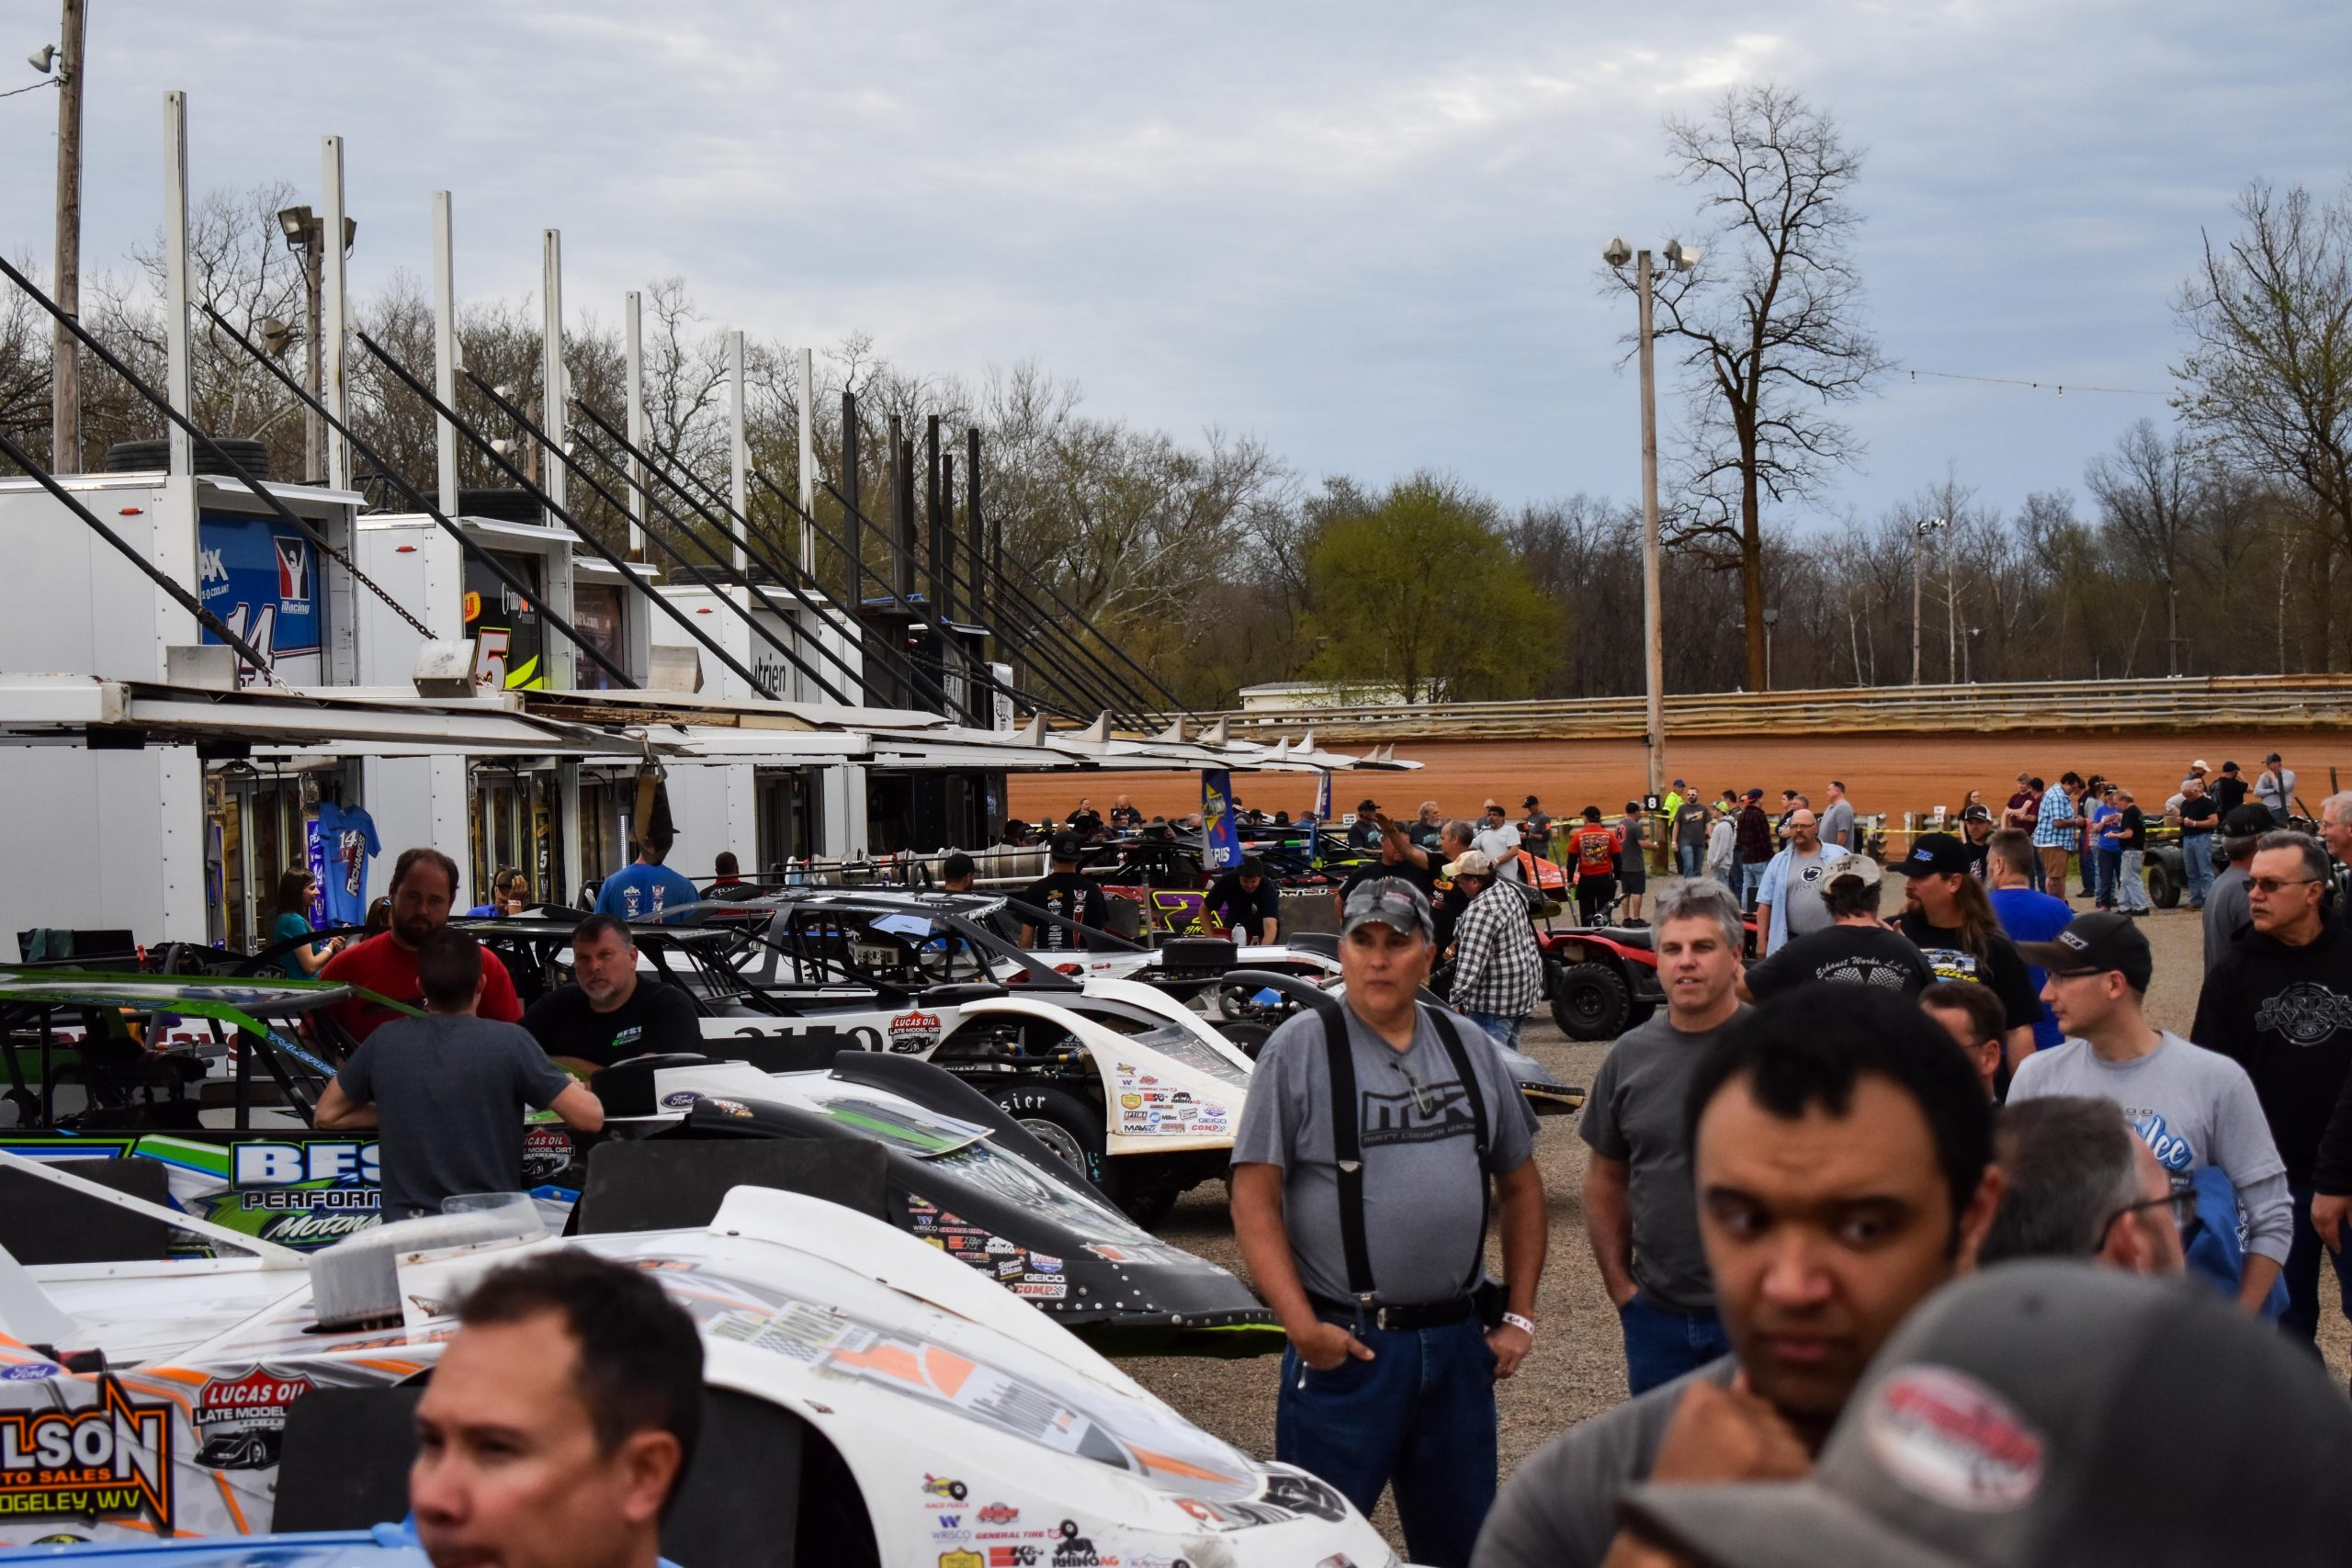 (EDITORS: Photo: Fans observe pre-race activities before the Nininger Memorial at Hagerstown Speedway, April 13, 2019. Darryl Kinsey Jr./Capital News Service)